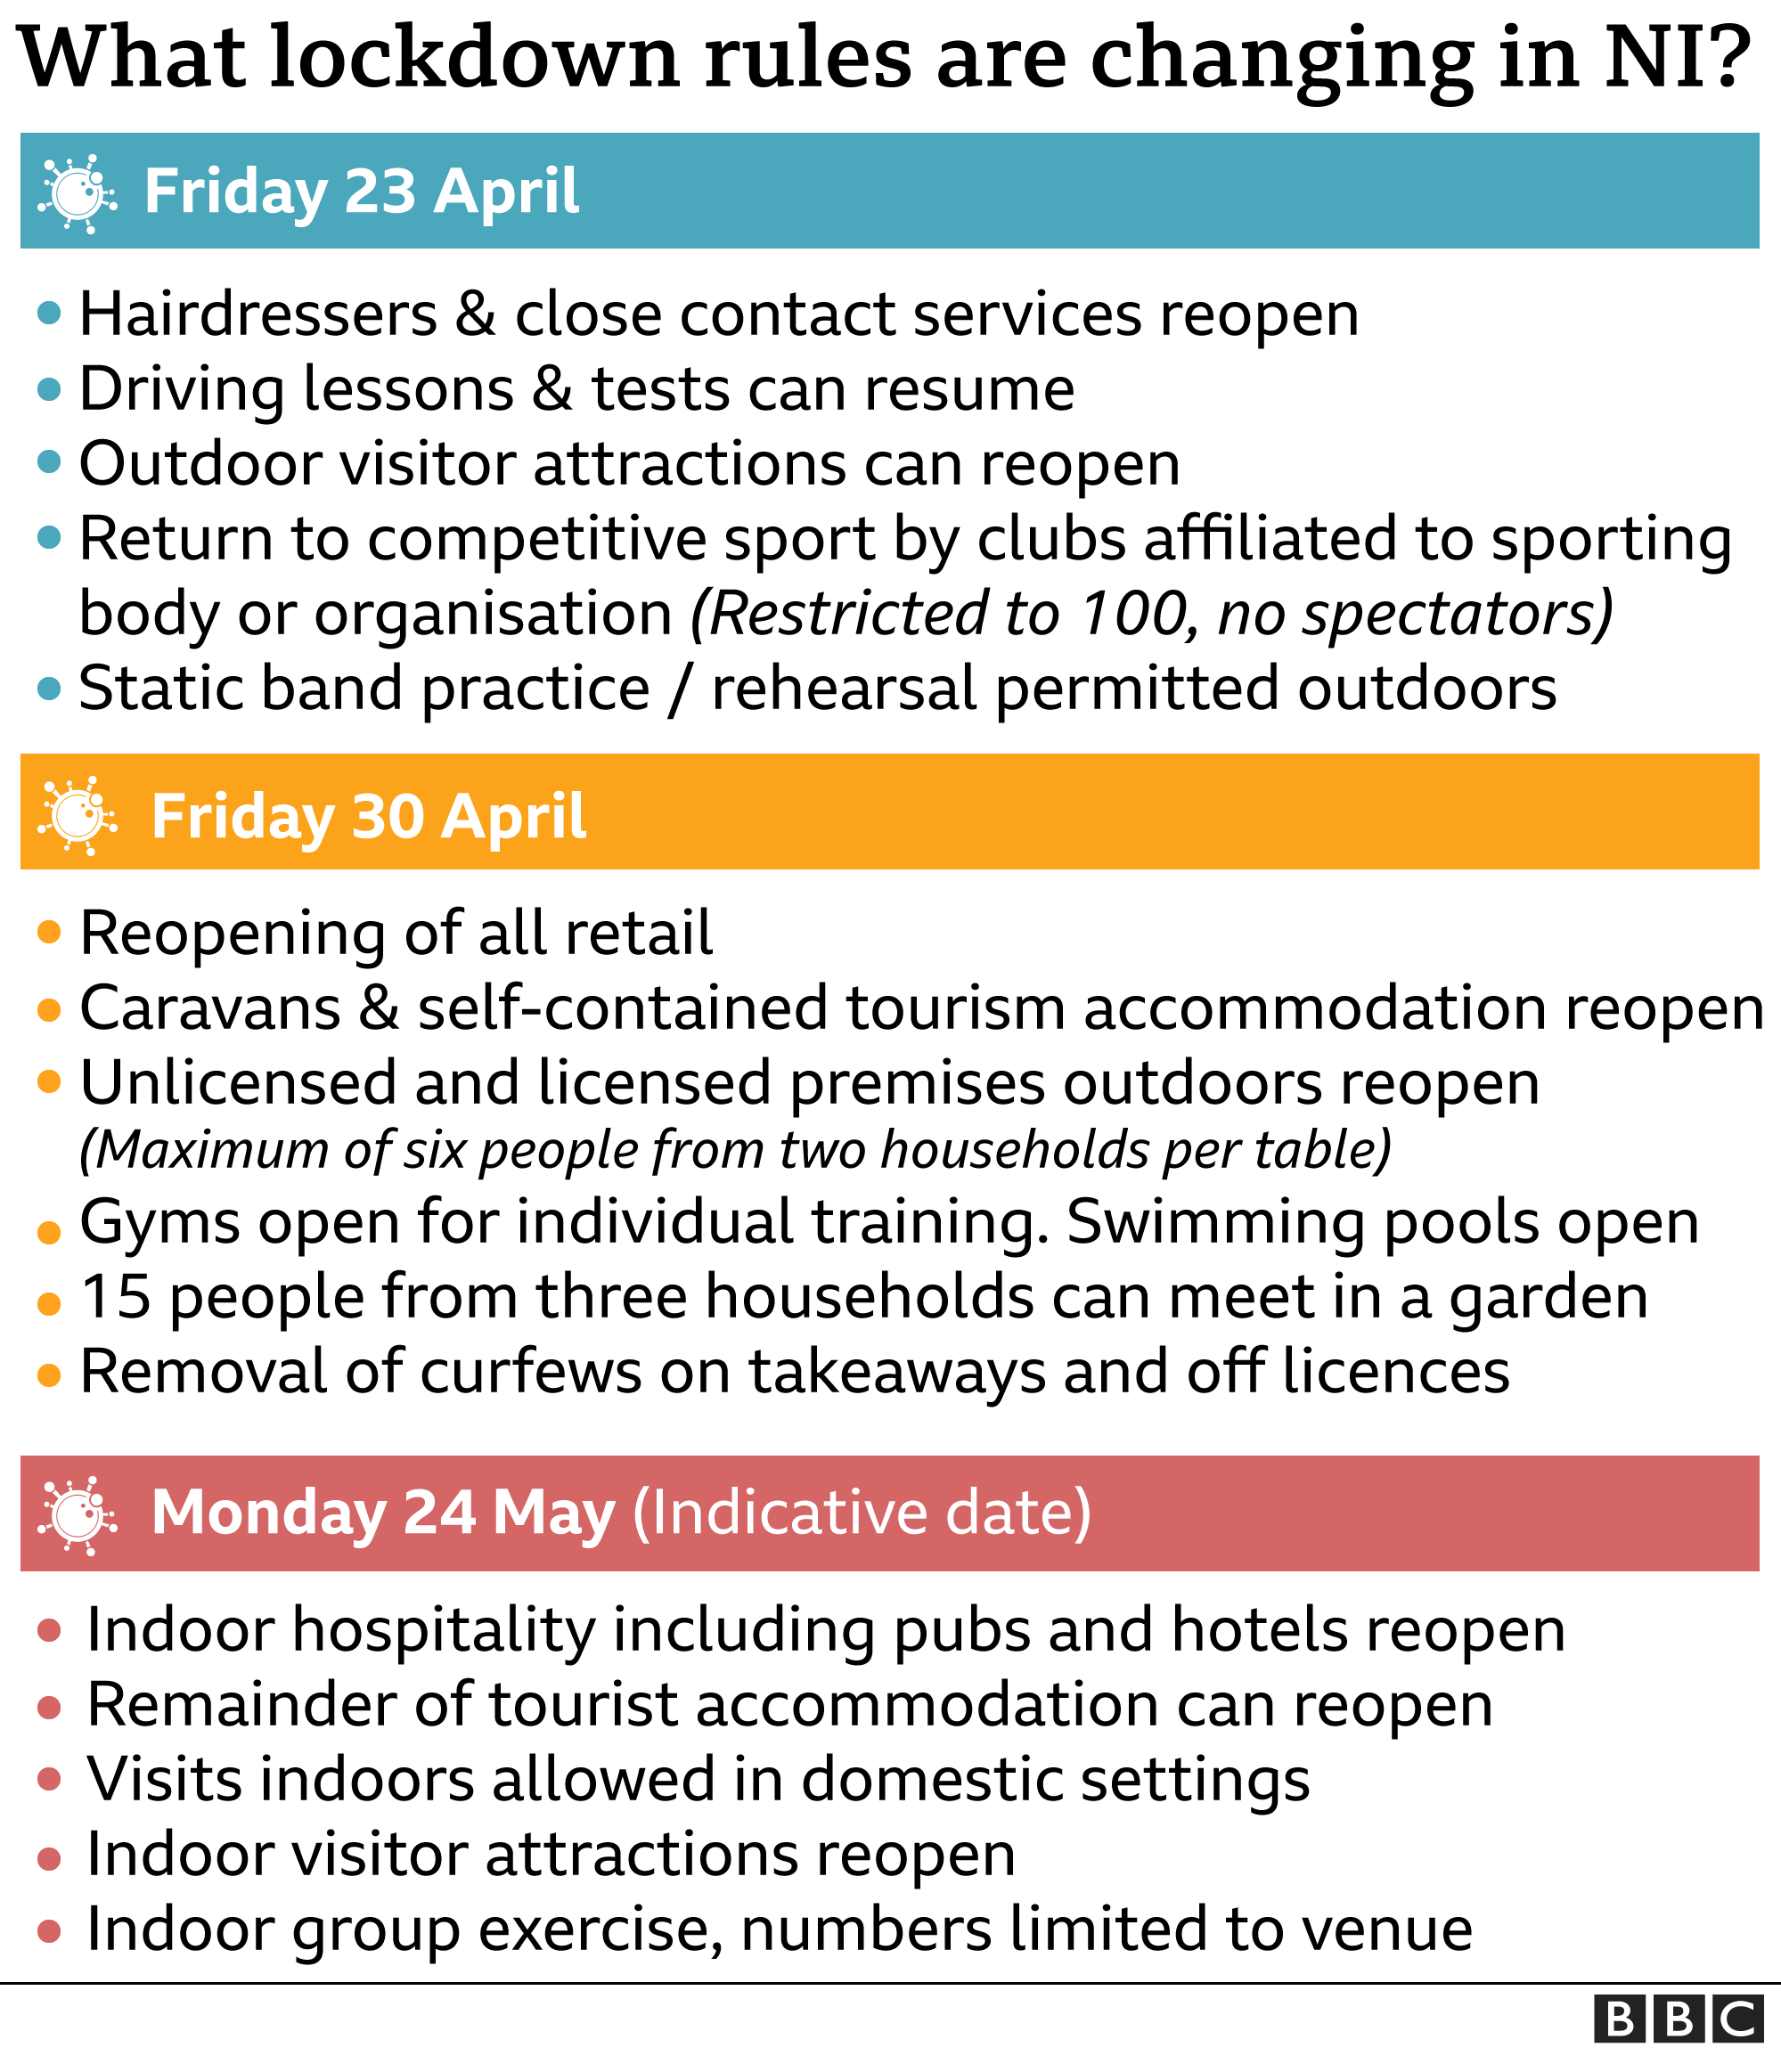 A graphic which reads: What lockdown rules are changing in NI? Friday 23 April - Hairdressers and close-contact services to open; Driving lessons and tests can resume; Outdoor visitor attractions can reopen; Return to competitive sport by clubs affiliated to sportingbody or organisation (restricted to 100, no speatators); Static band practice/rehearsal permitted outdoors. Friday 30 April - Reopening of all retail; Caravans and self-contained tourism accommodation reopens; Unlicensed and lucensed premises outdoors reopen (maximum of six people from two households per table); Gyms open for individual training; Swimming poos reopen; 15 people from three households can meet in a garden; Removal of curfews on takeaways and off licences. Monday 24 May (indicative date) - Indoor hospitality including pubs and hotels reopen; Remainder of tourist accommodation can reopen; Visits indoors allowed in domestic settings; Indoor visitor attractions reopen; Indoor group exercise, numbers limited.